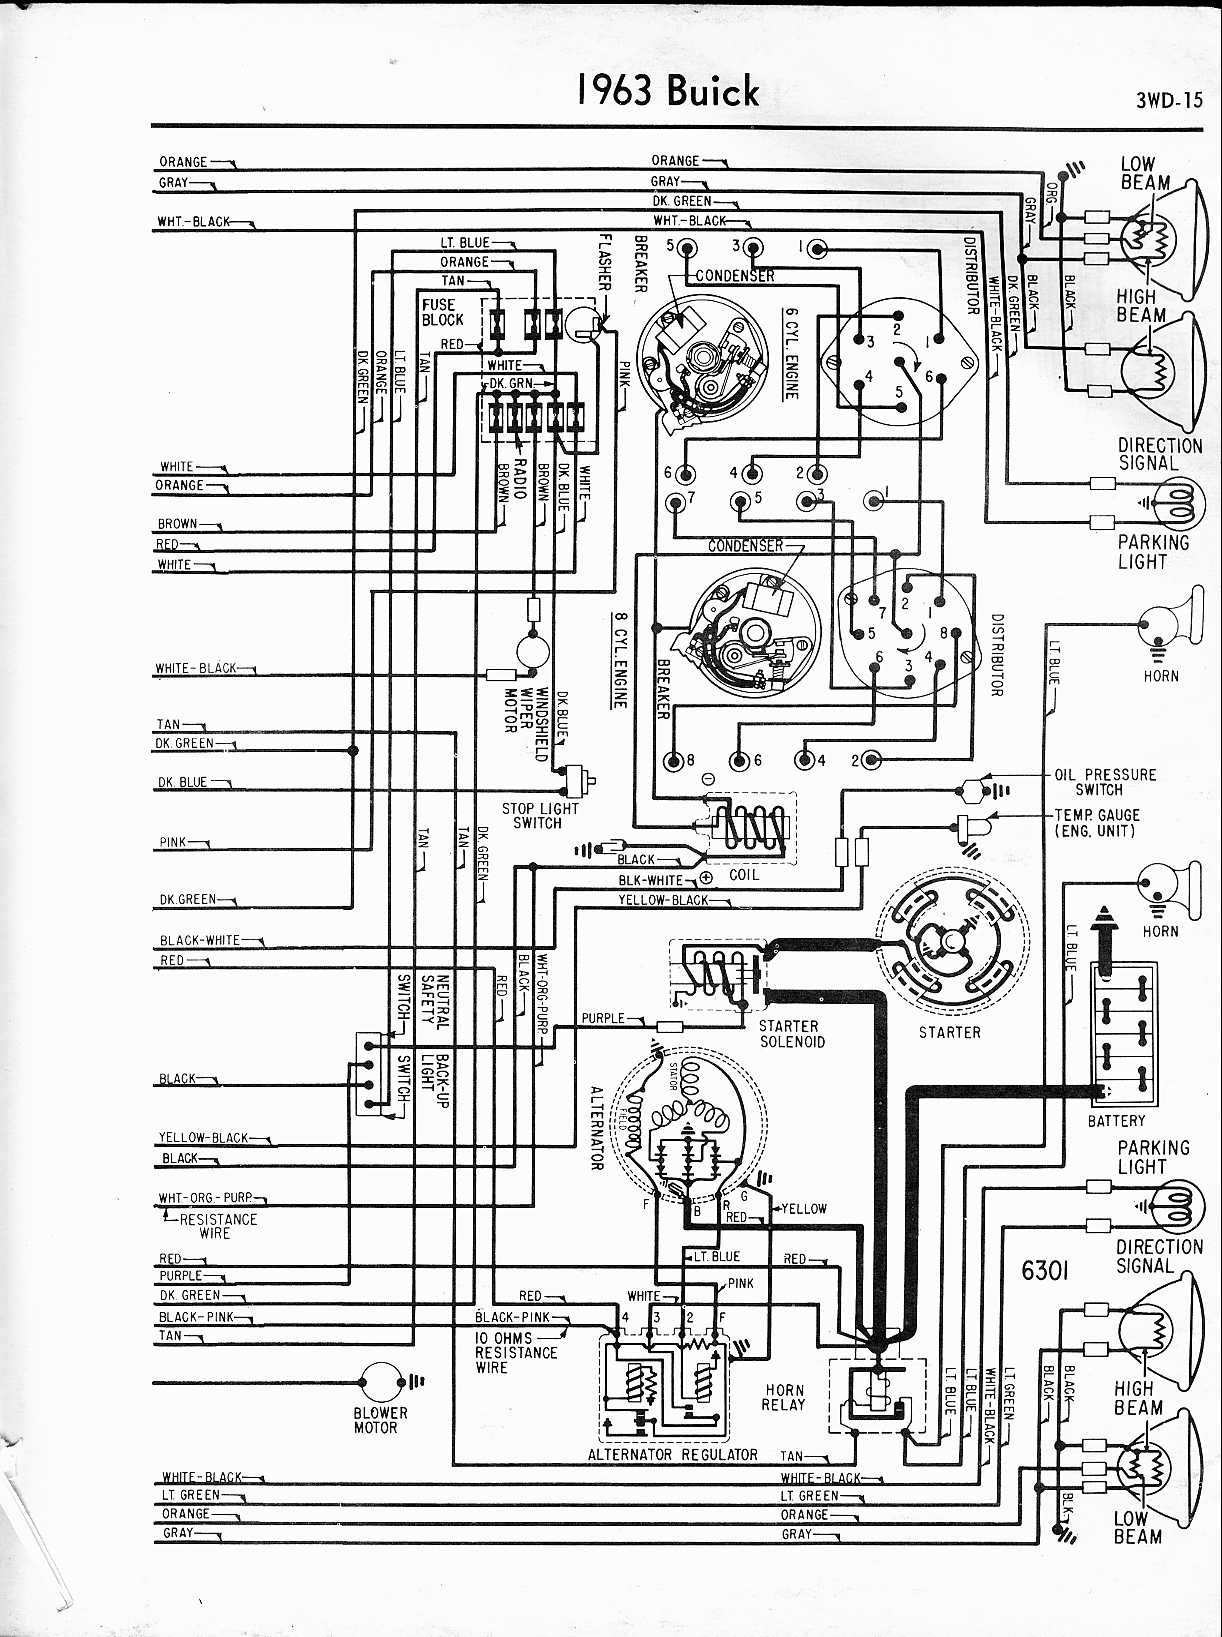 MWireBuic65_3WD 015 buick wiring diagrams 1957 1965 1972 Buick Skylark at reclaimingppi.co